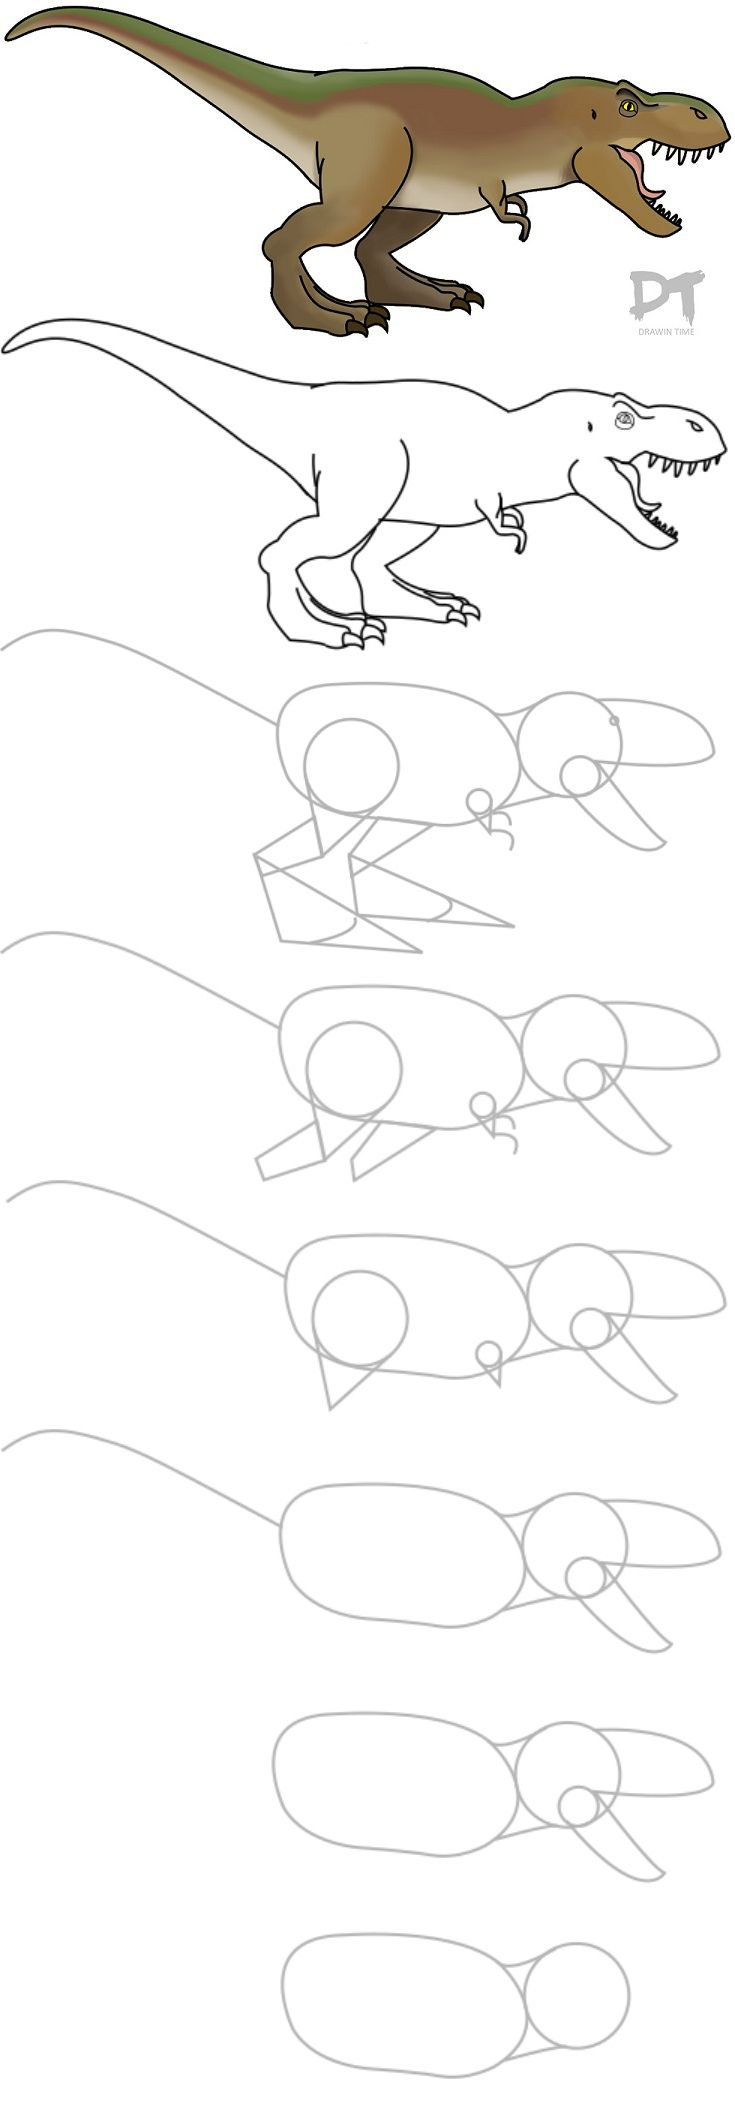 Uncategorized How To Draw Dinosaur Step By Step t rex tyrannosaurus doodles and drawings tutorial how to draw a super easy fun http